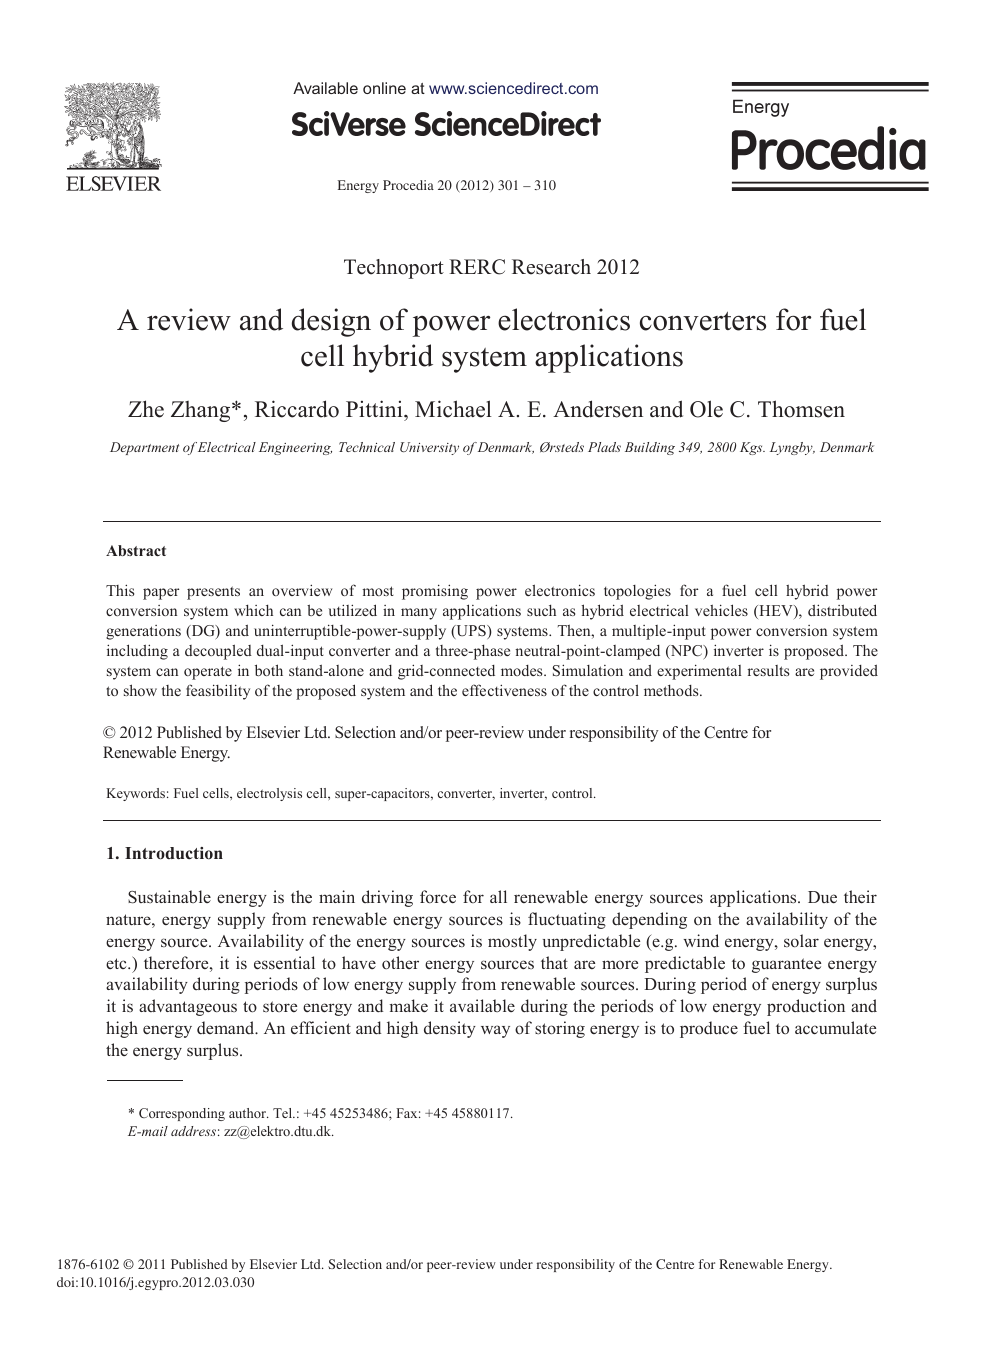 A Review and Design of Power Electronics Converters for Fuel